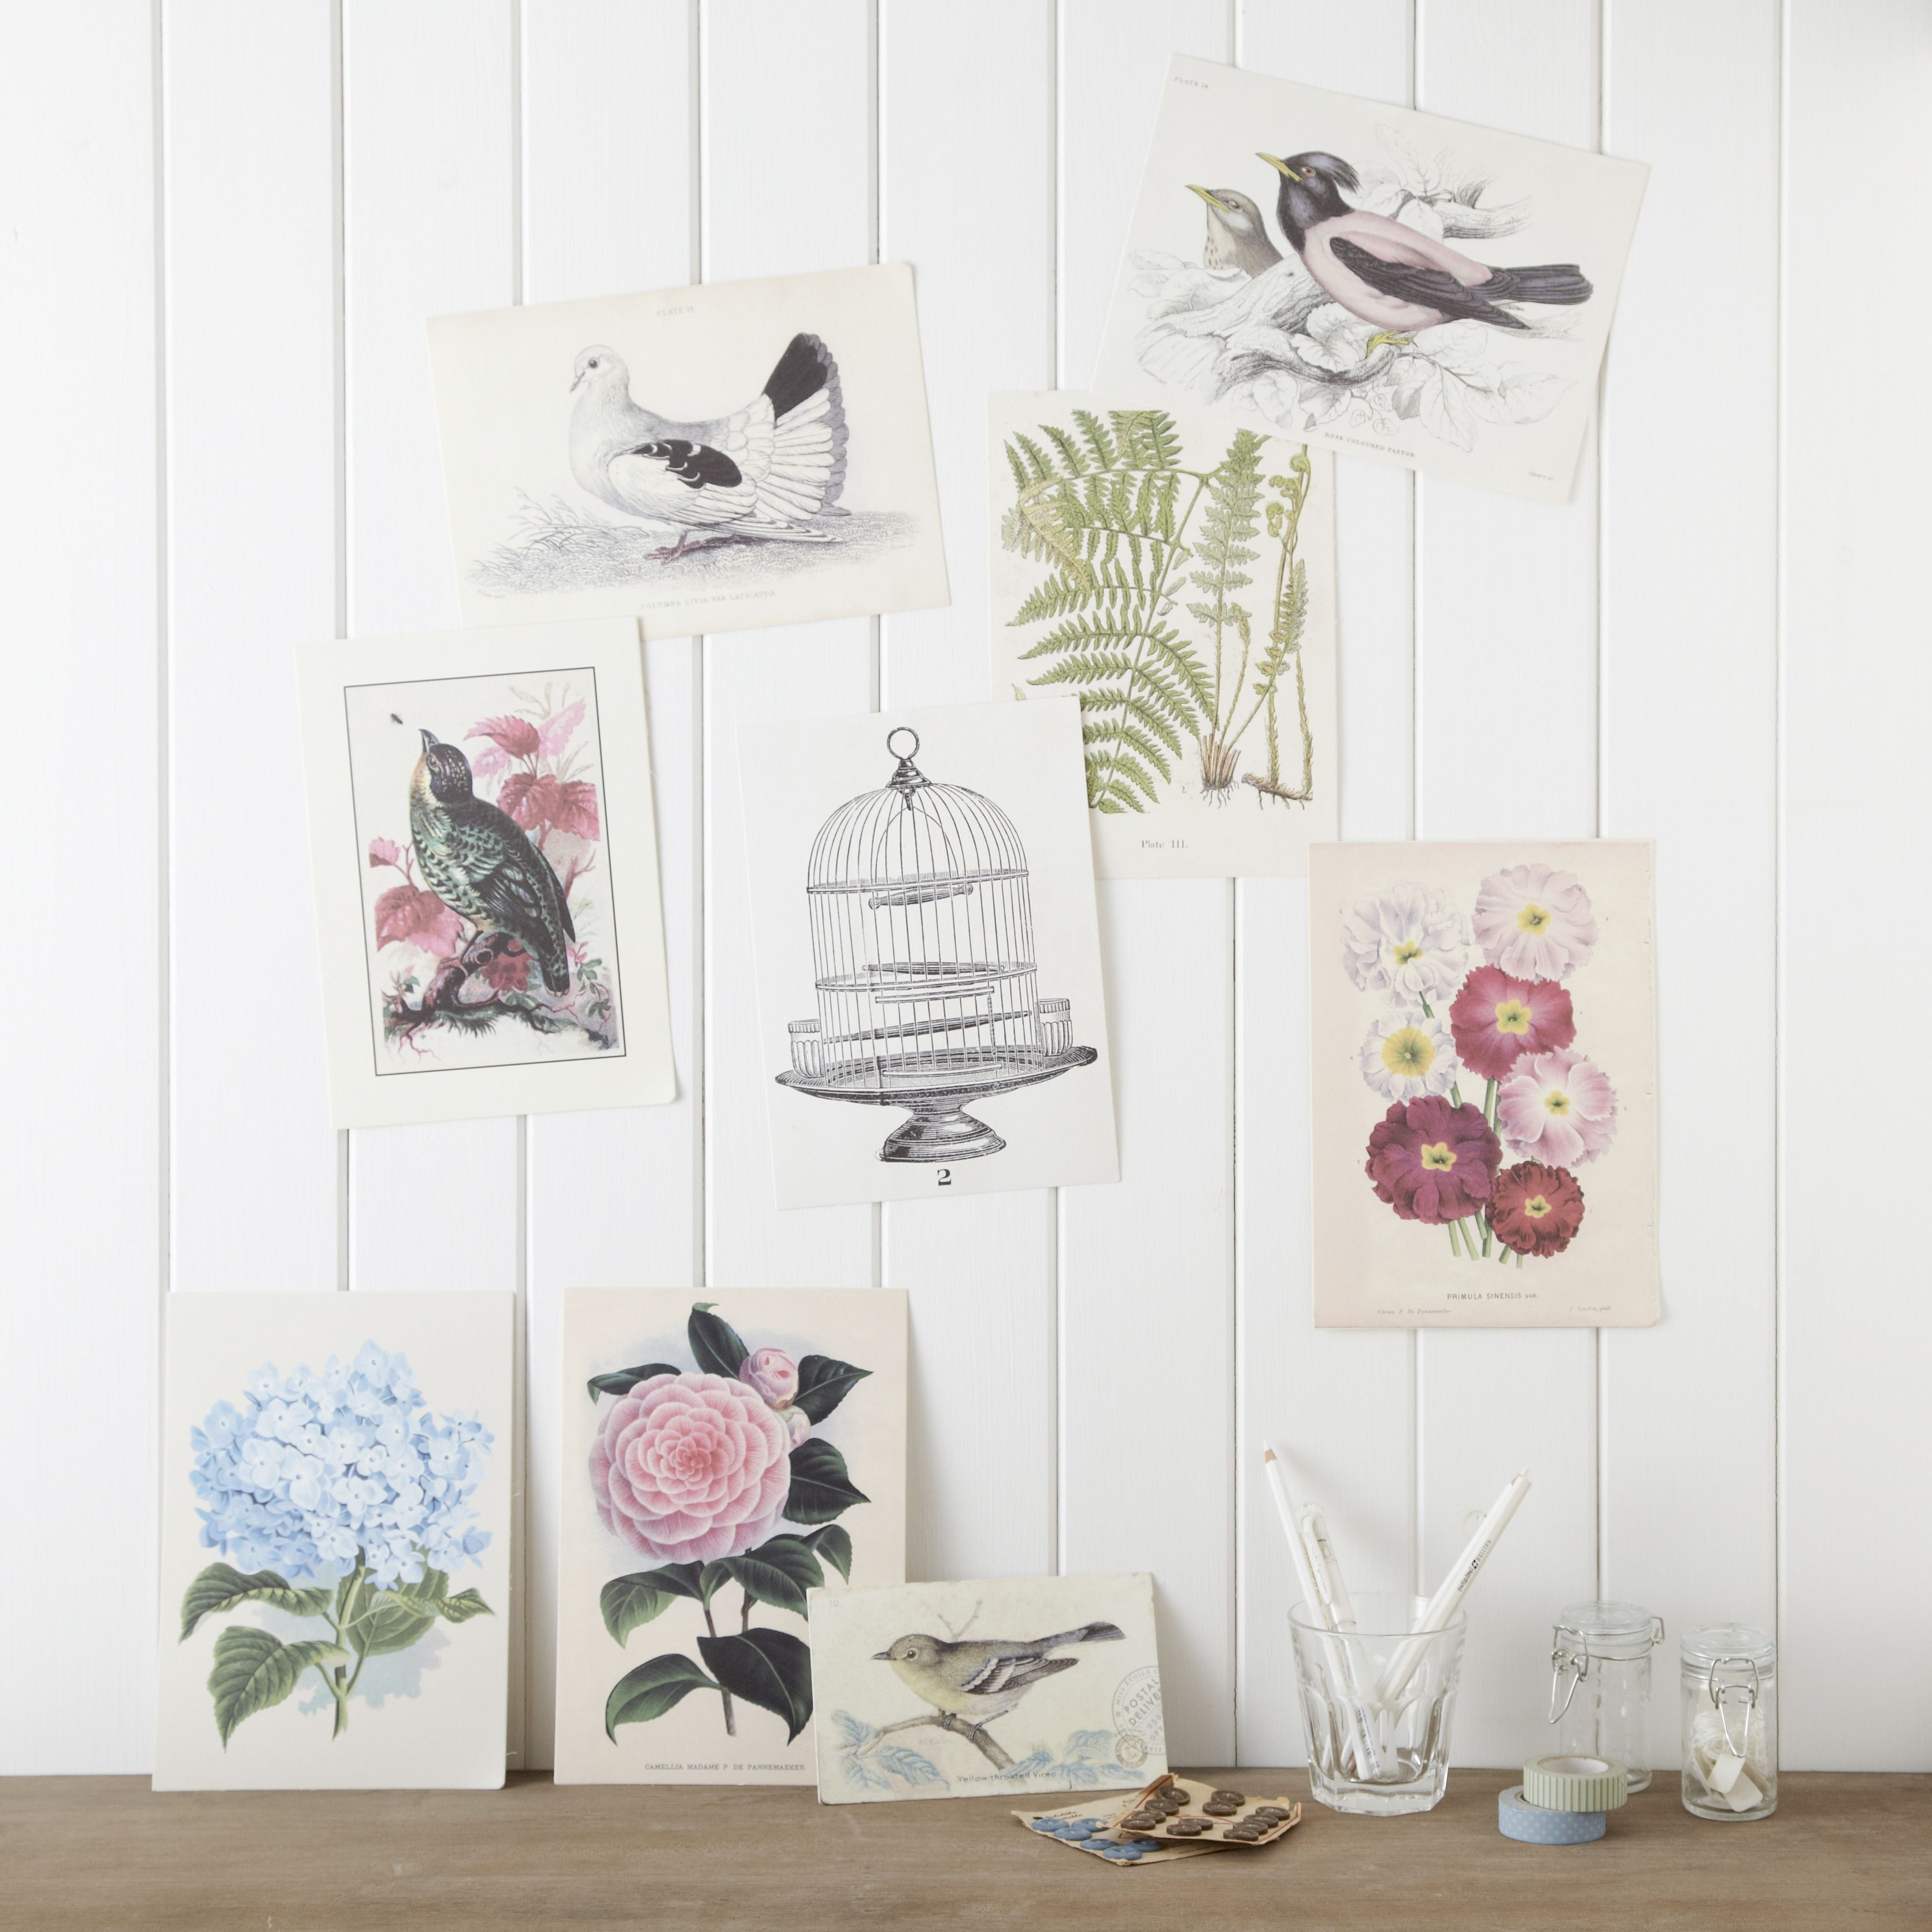 A wonderful set of 9 vintage inspired prints on thick matt paper in varying sizes. Choose your favourites to frame or simply tac up on walls, mirrors or shelves to create an ever changing display.  Largest H: 25cm x W: 19cm